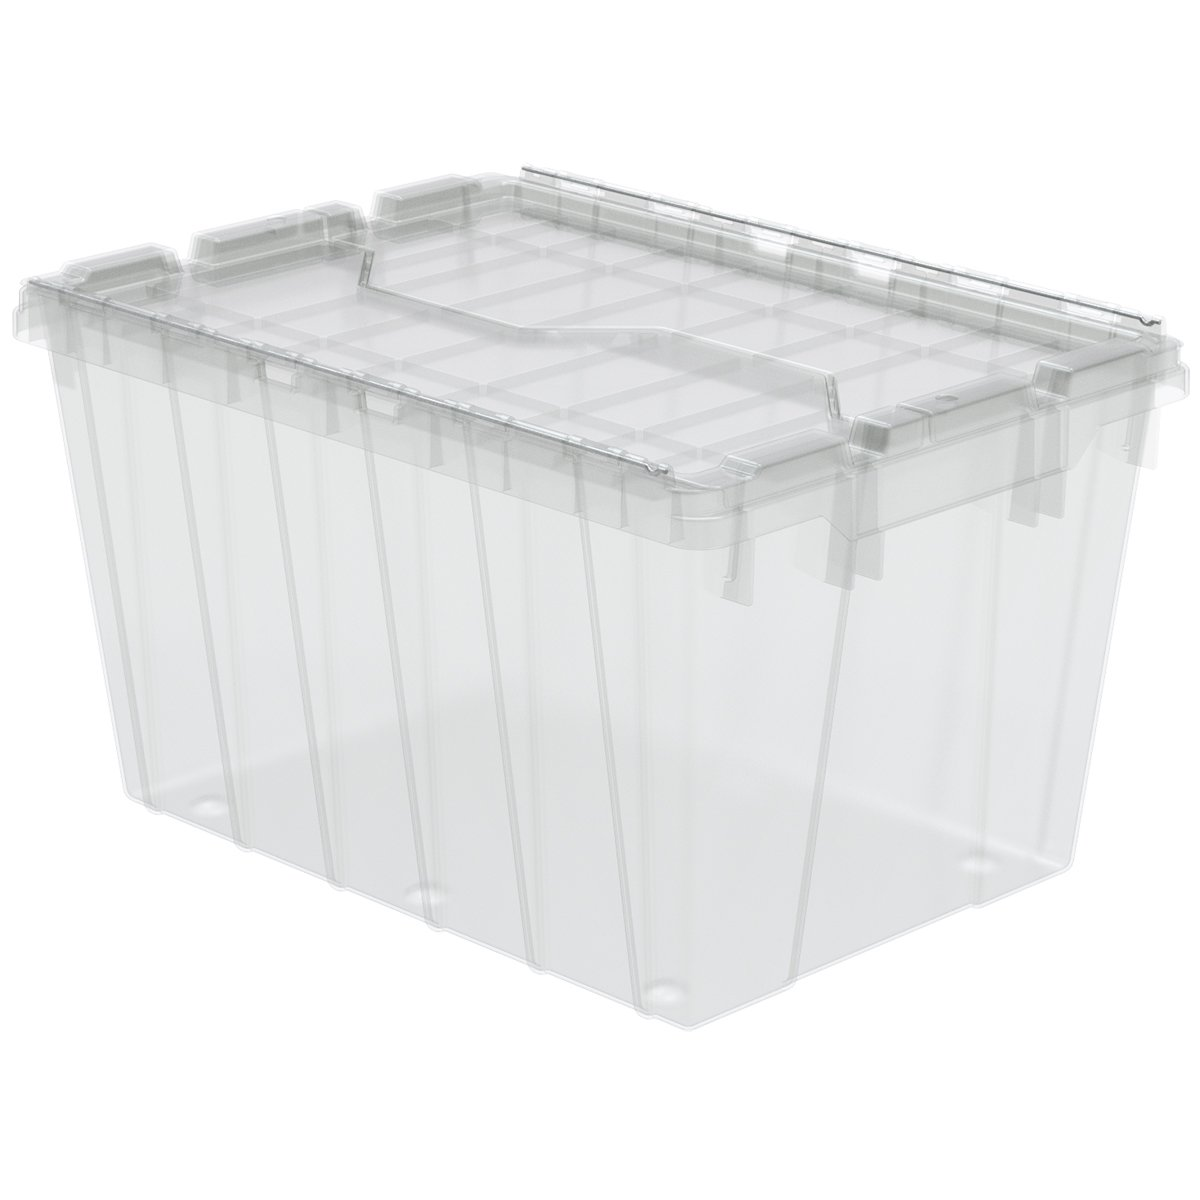 Akro-Mils 39120SCLAR Plastic Storage and Distribution Container Tote with Hinged Lid (6 Pack), 21.5'' L x 15'' W x 12.5'' H, Clear by Akro-Mils